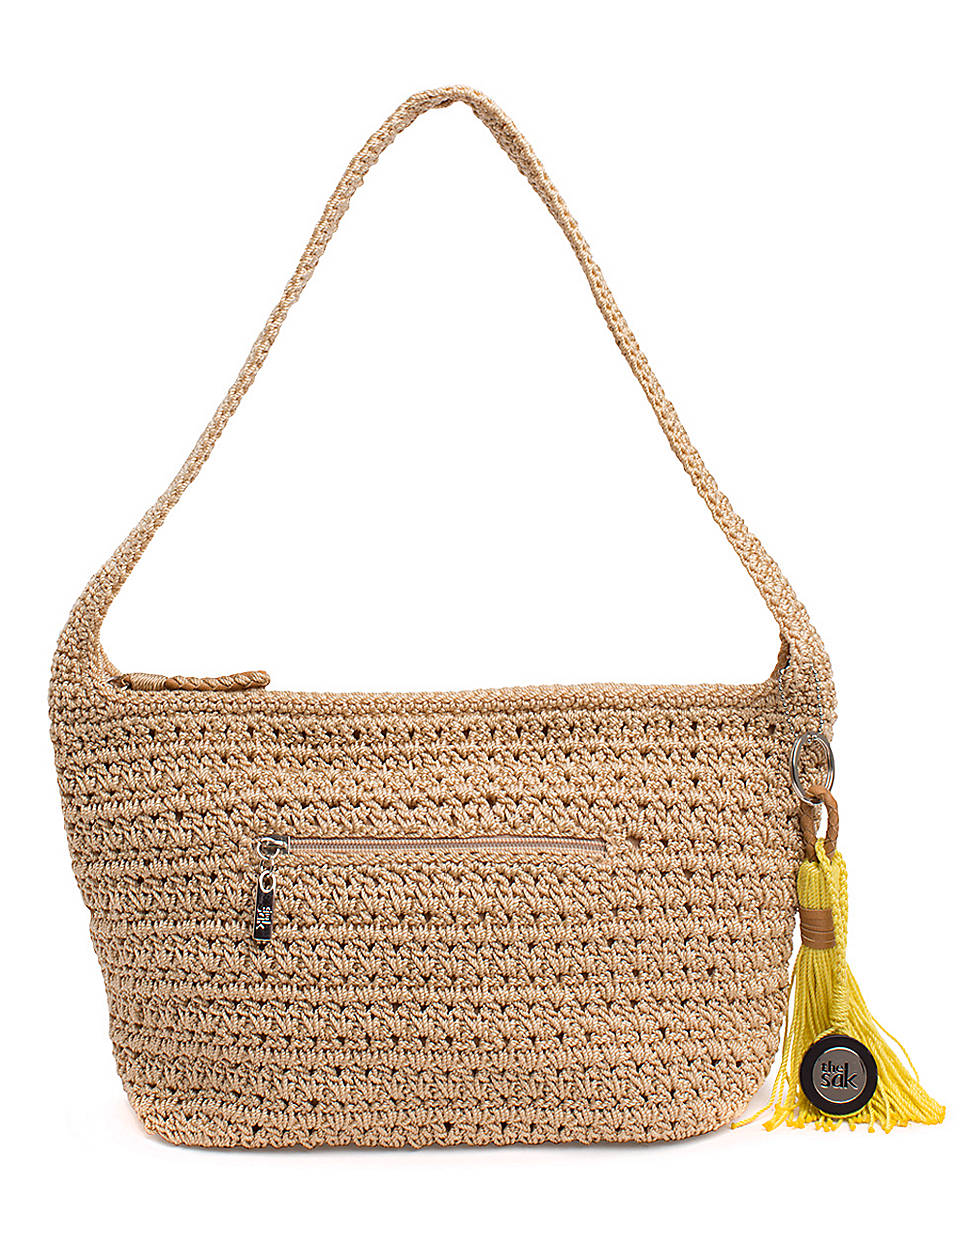 Sak Crochet Bag : The Sak Casual Classics Crochet Hobo Bag in Beige (bamboo) Lyst